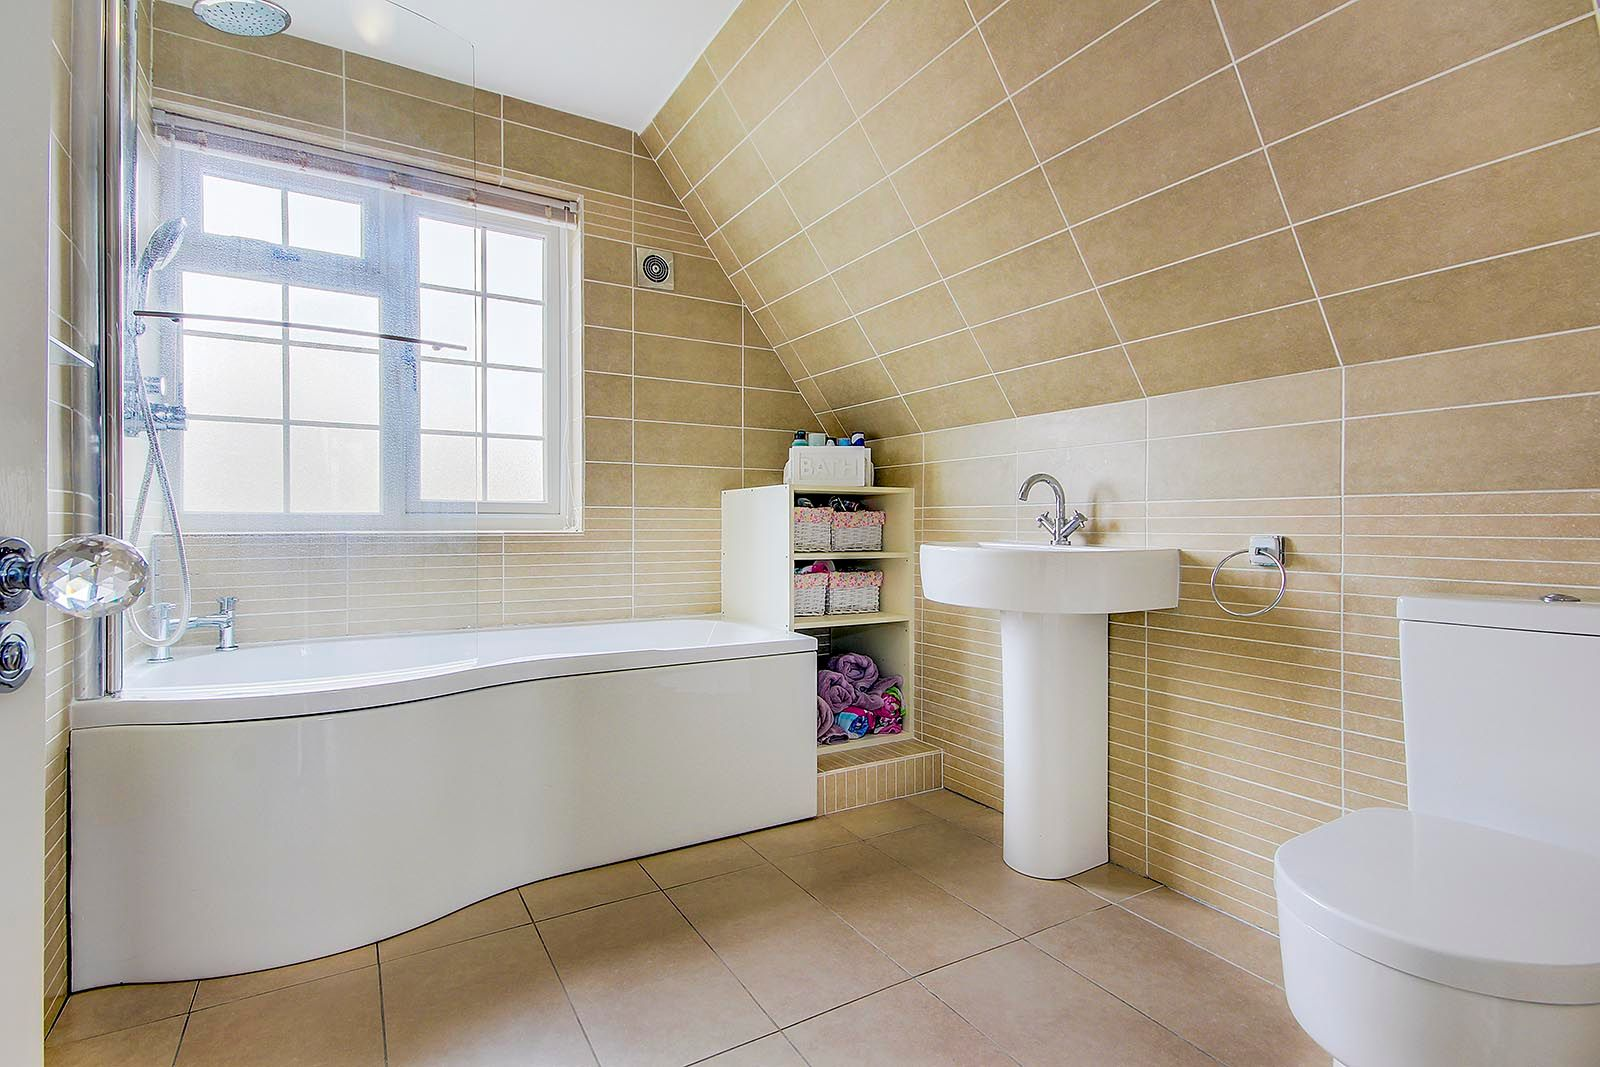 3 bed house for sale in Woodlands Close (COMP AUG 19)  - Property Image 8